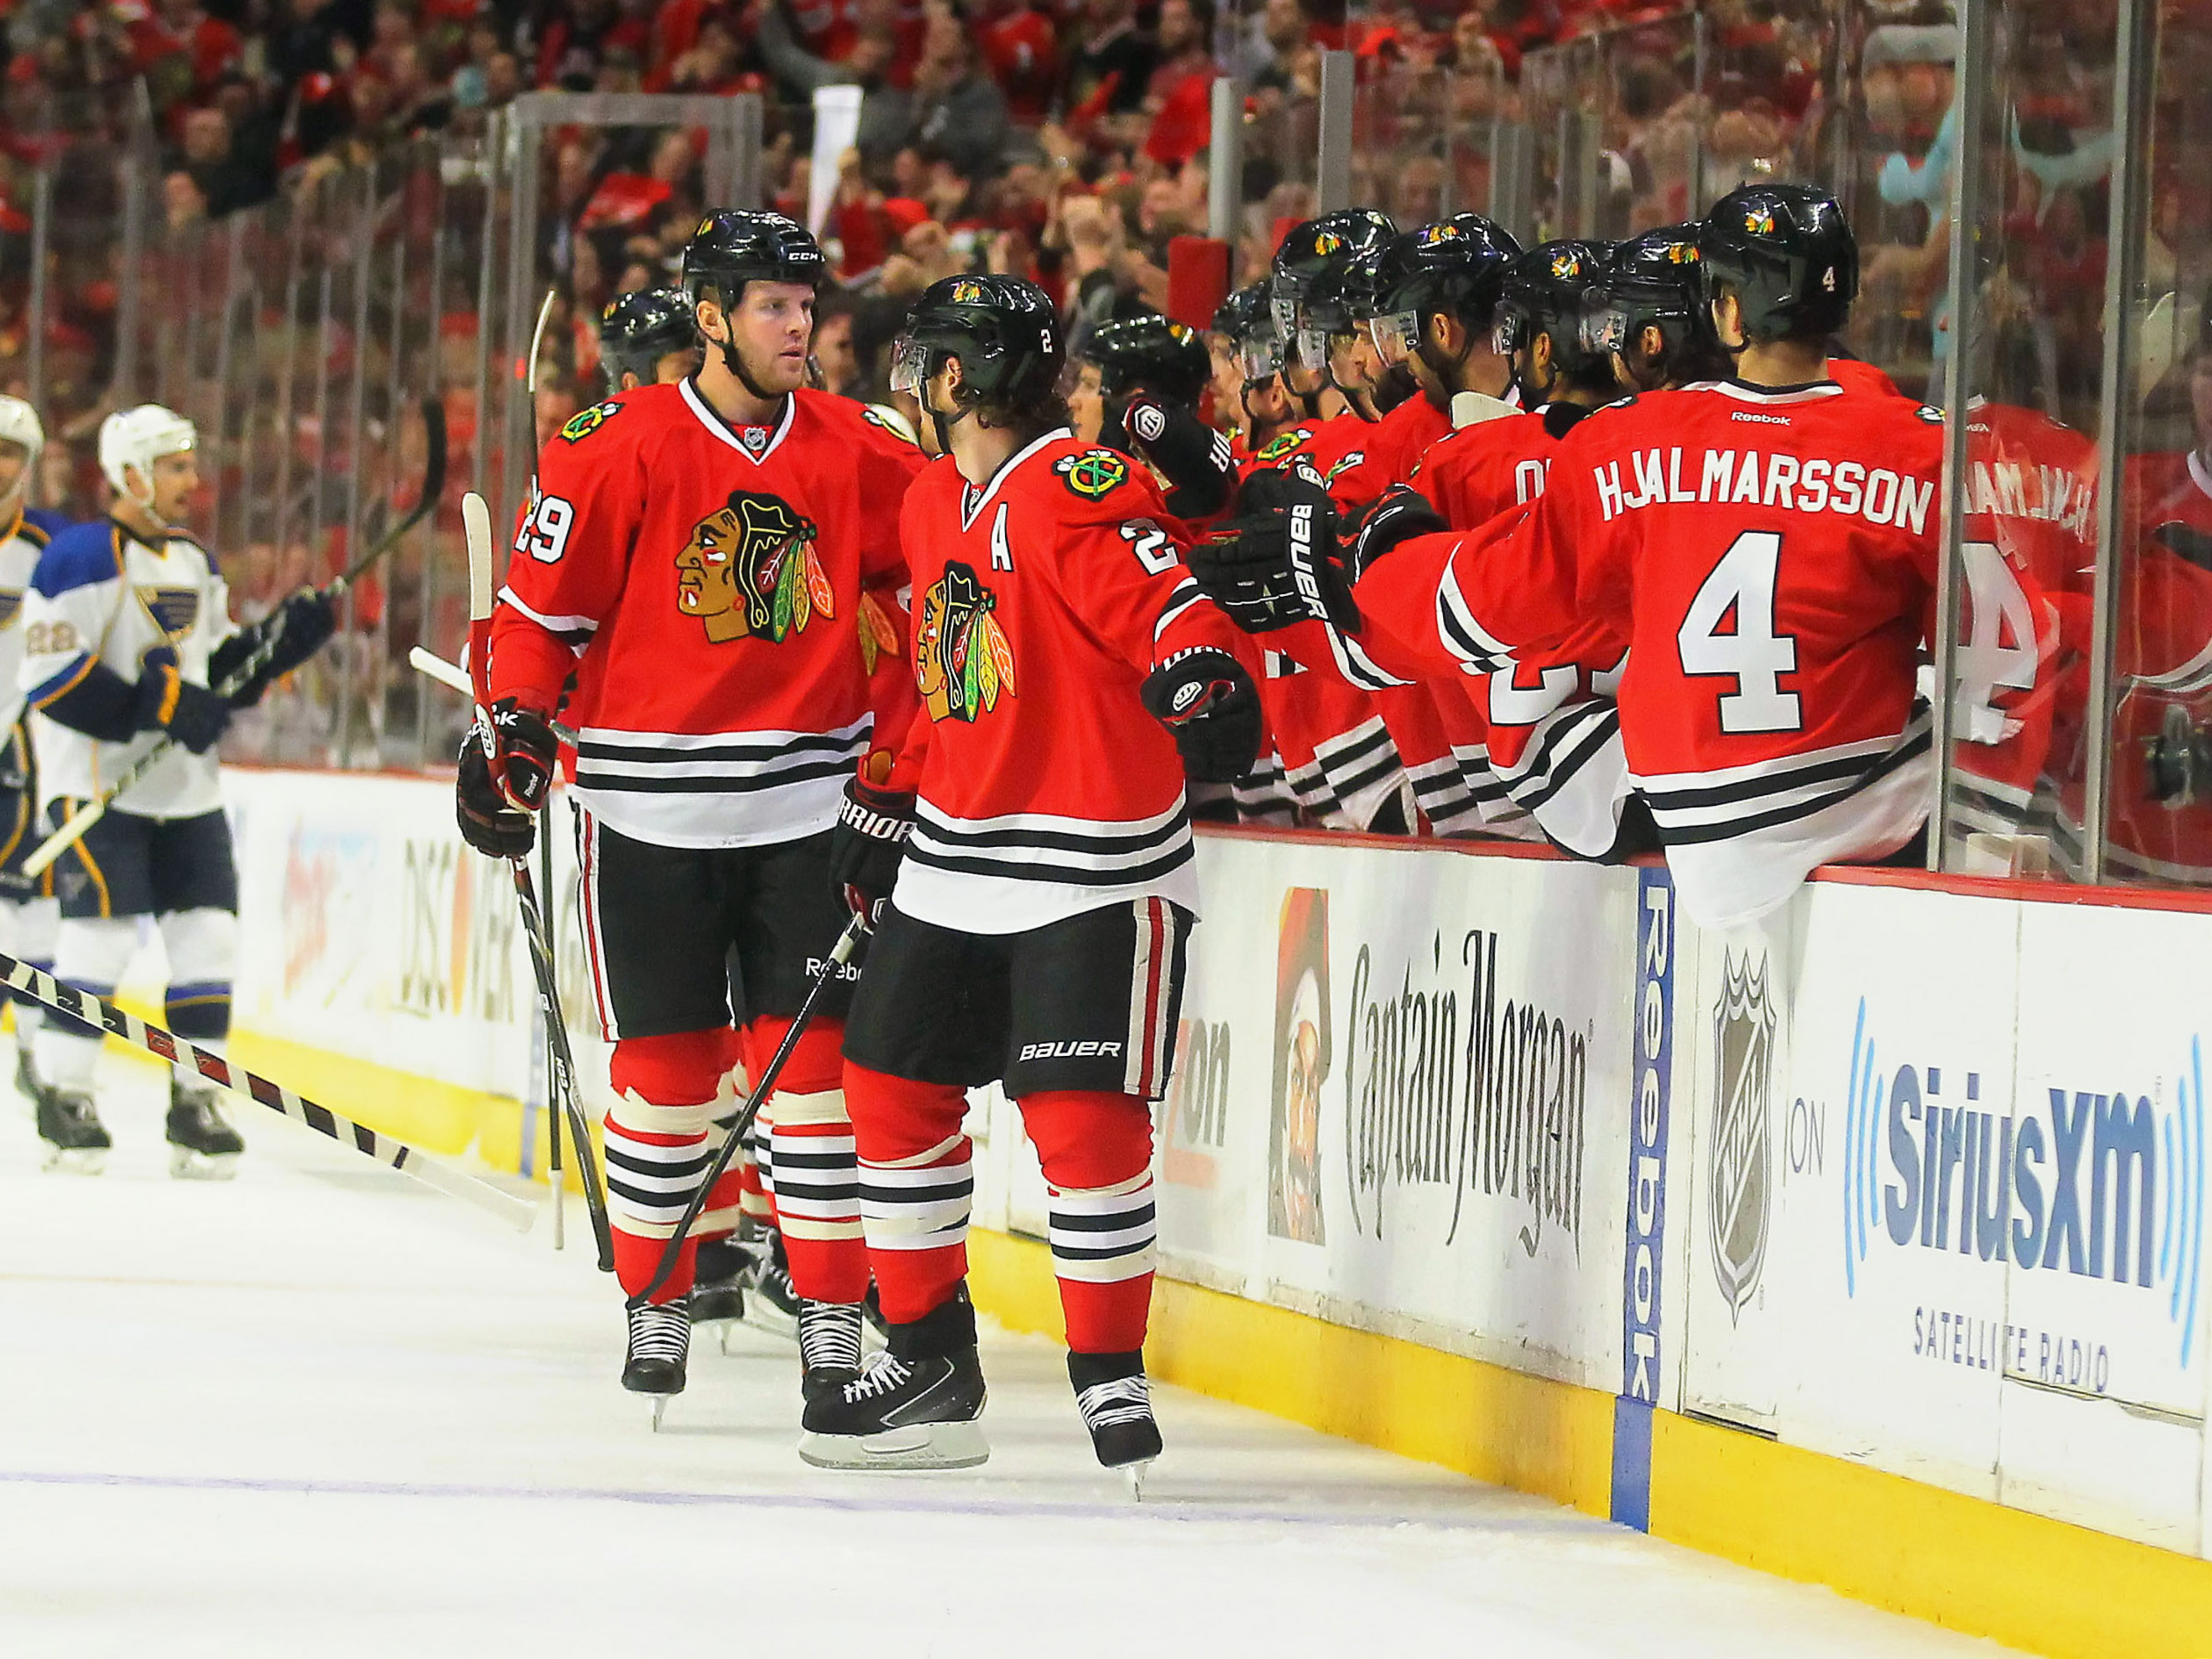 Chicago Blackhawks complete series comeback, eliminate Blues in Game 6